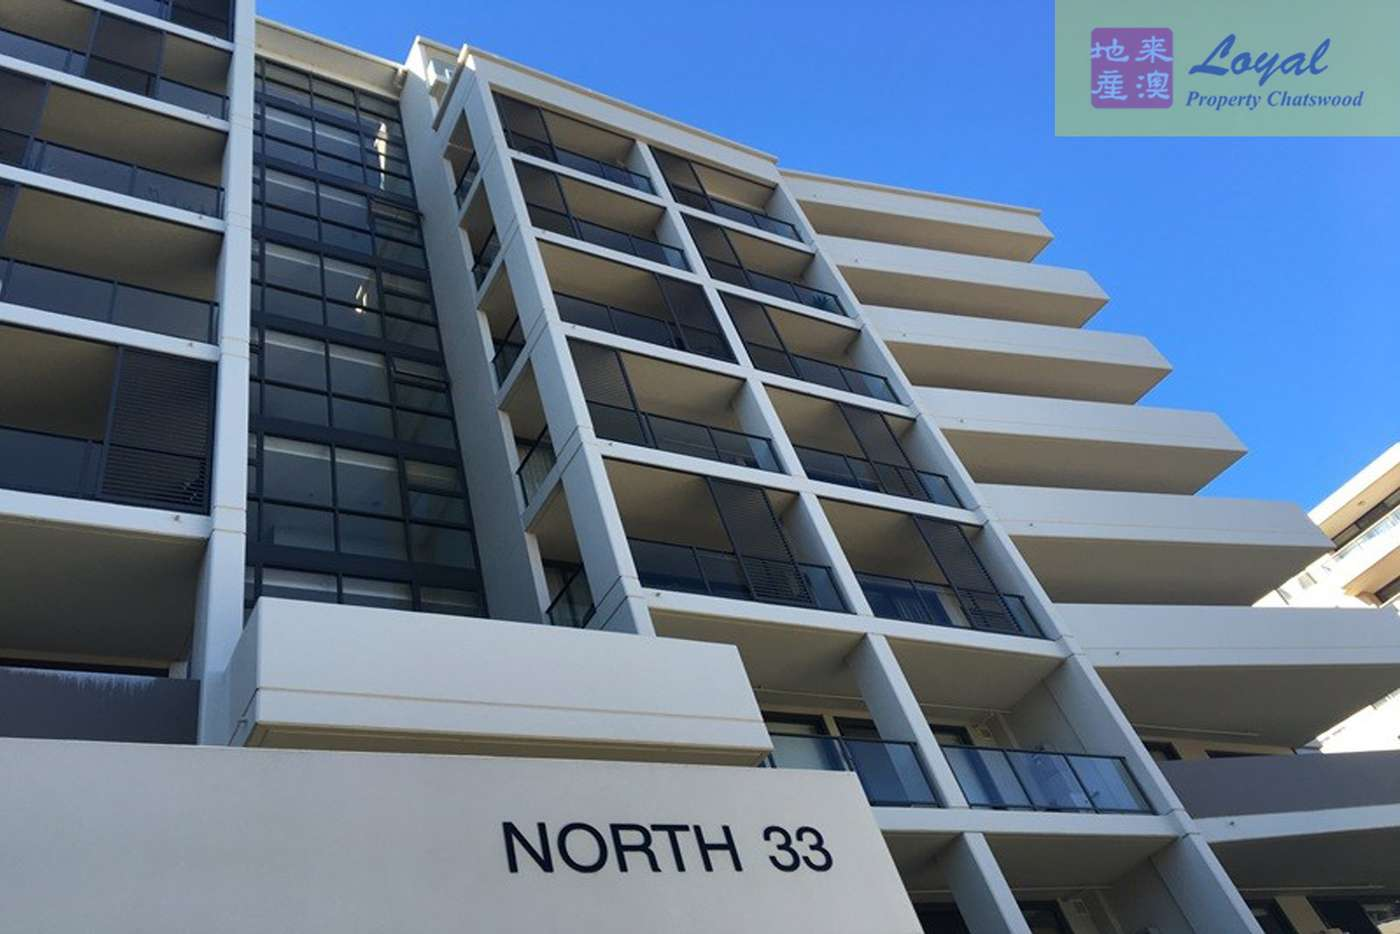 Main view of Homely apartment listing, 301/33 Devonshire Street, Chatswood NSW 2067